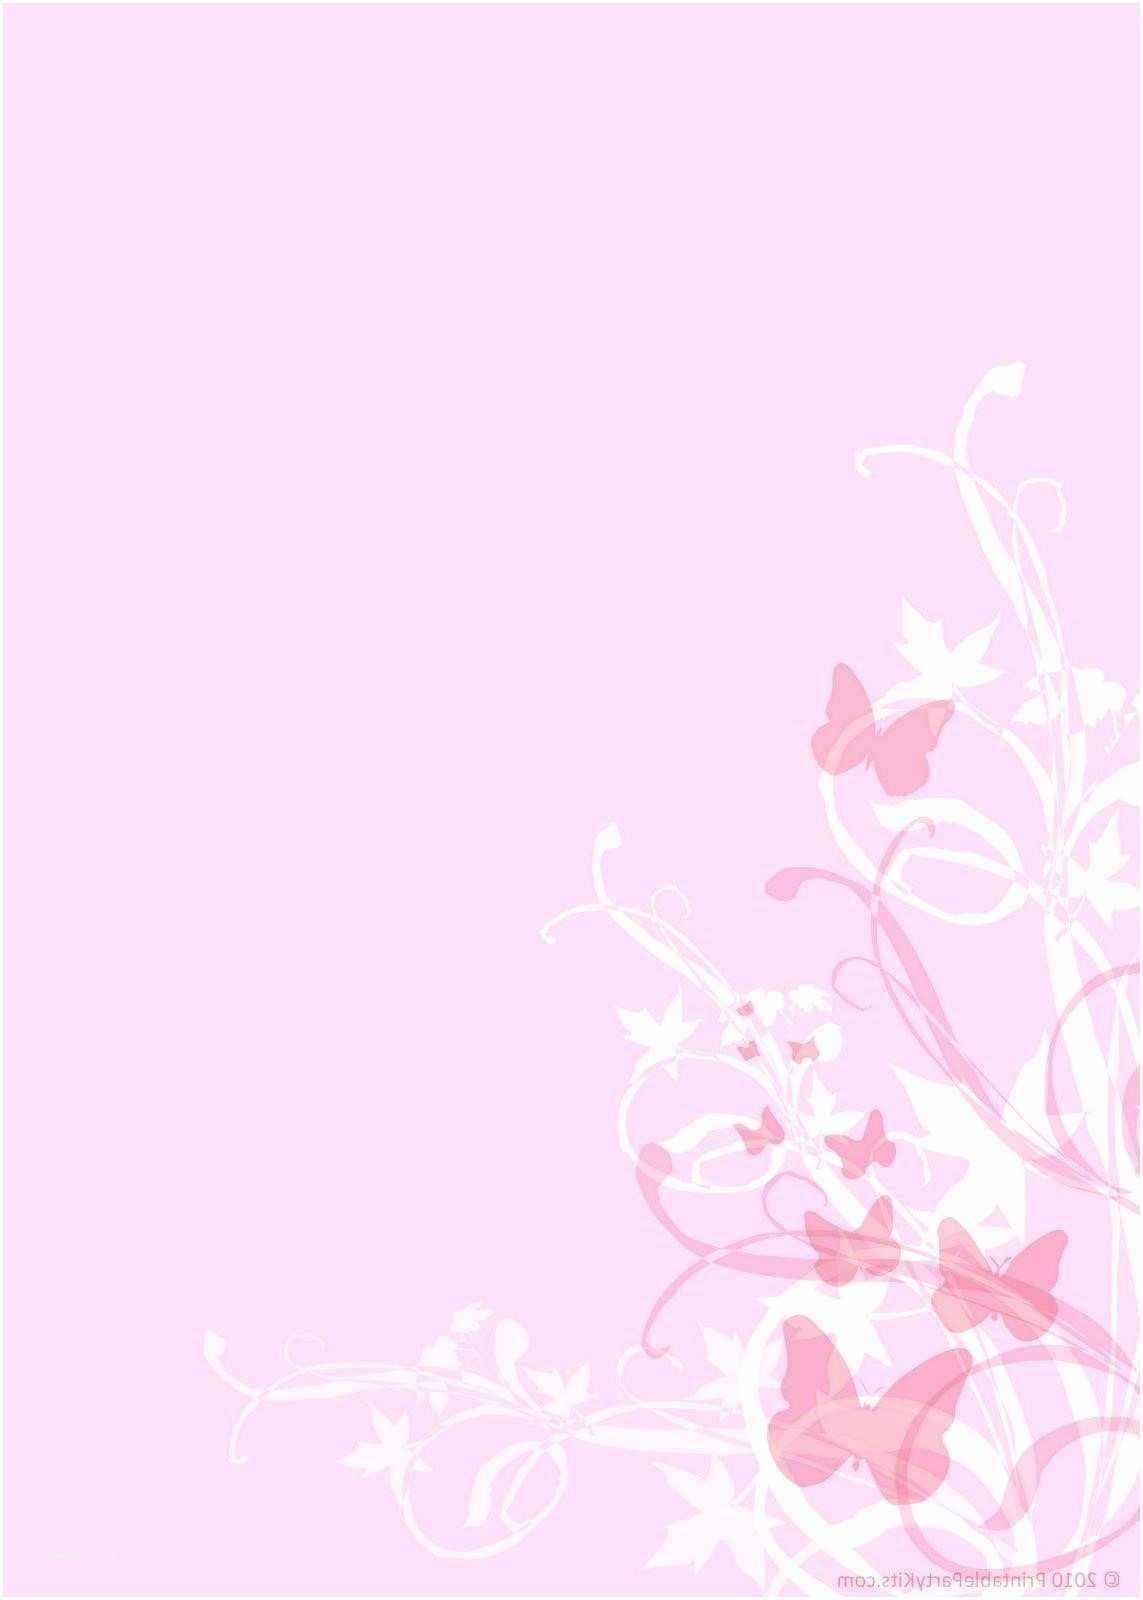 Background Images for Wedding Invitation Cards Card Background Design 28 Images Wedding Invitation